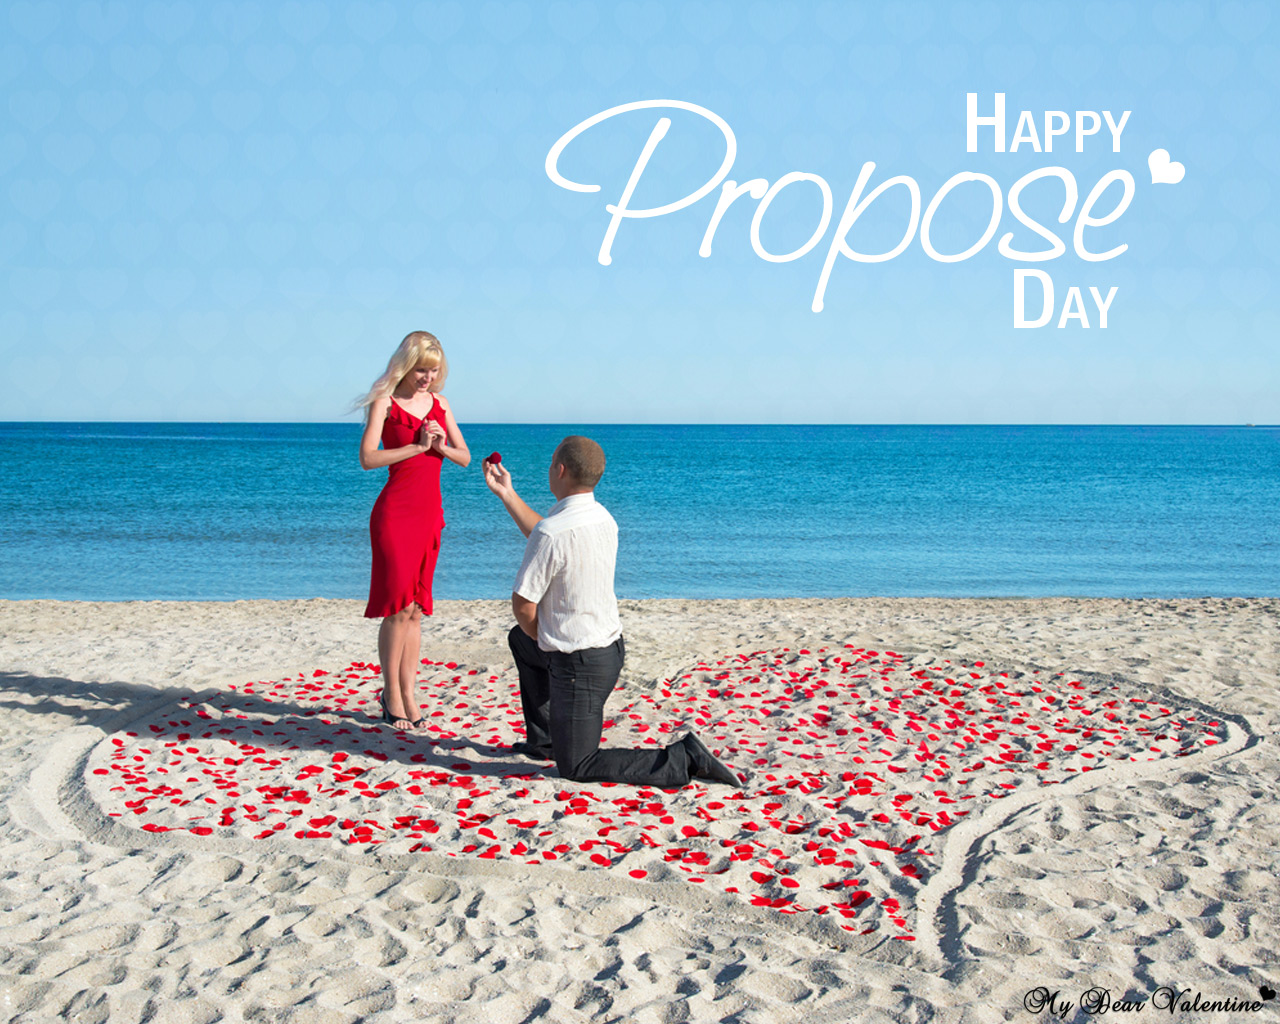 Happy Propose Day Romantic Gifts And Free Wallpapers For